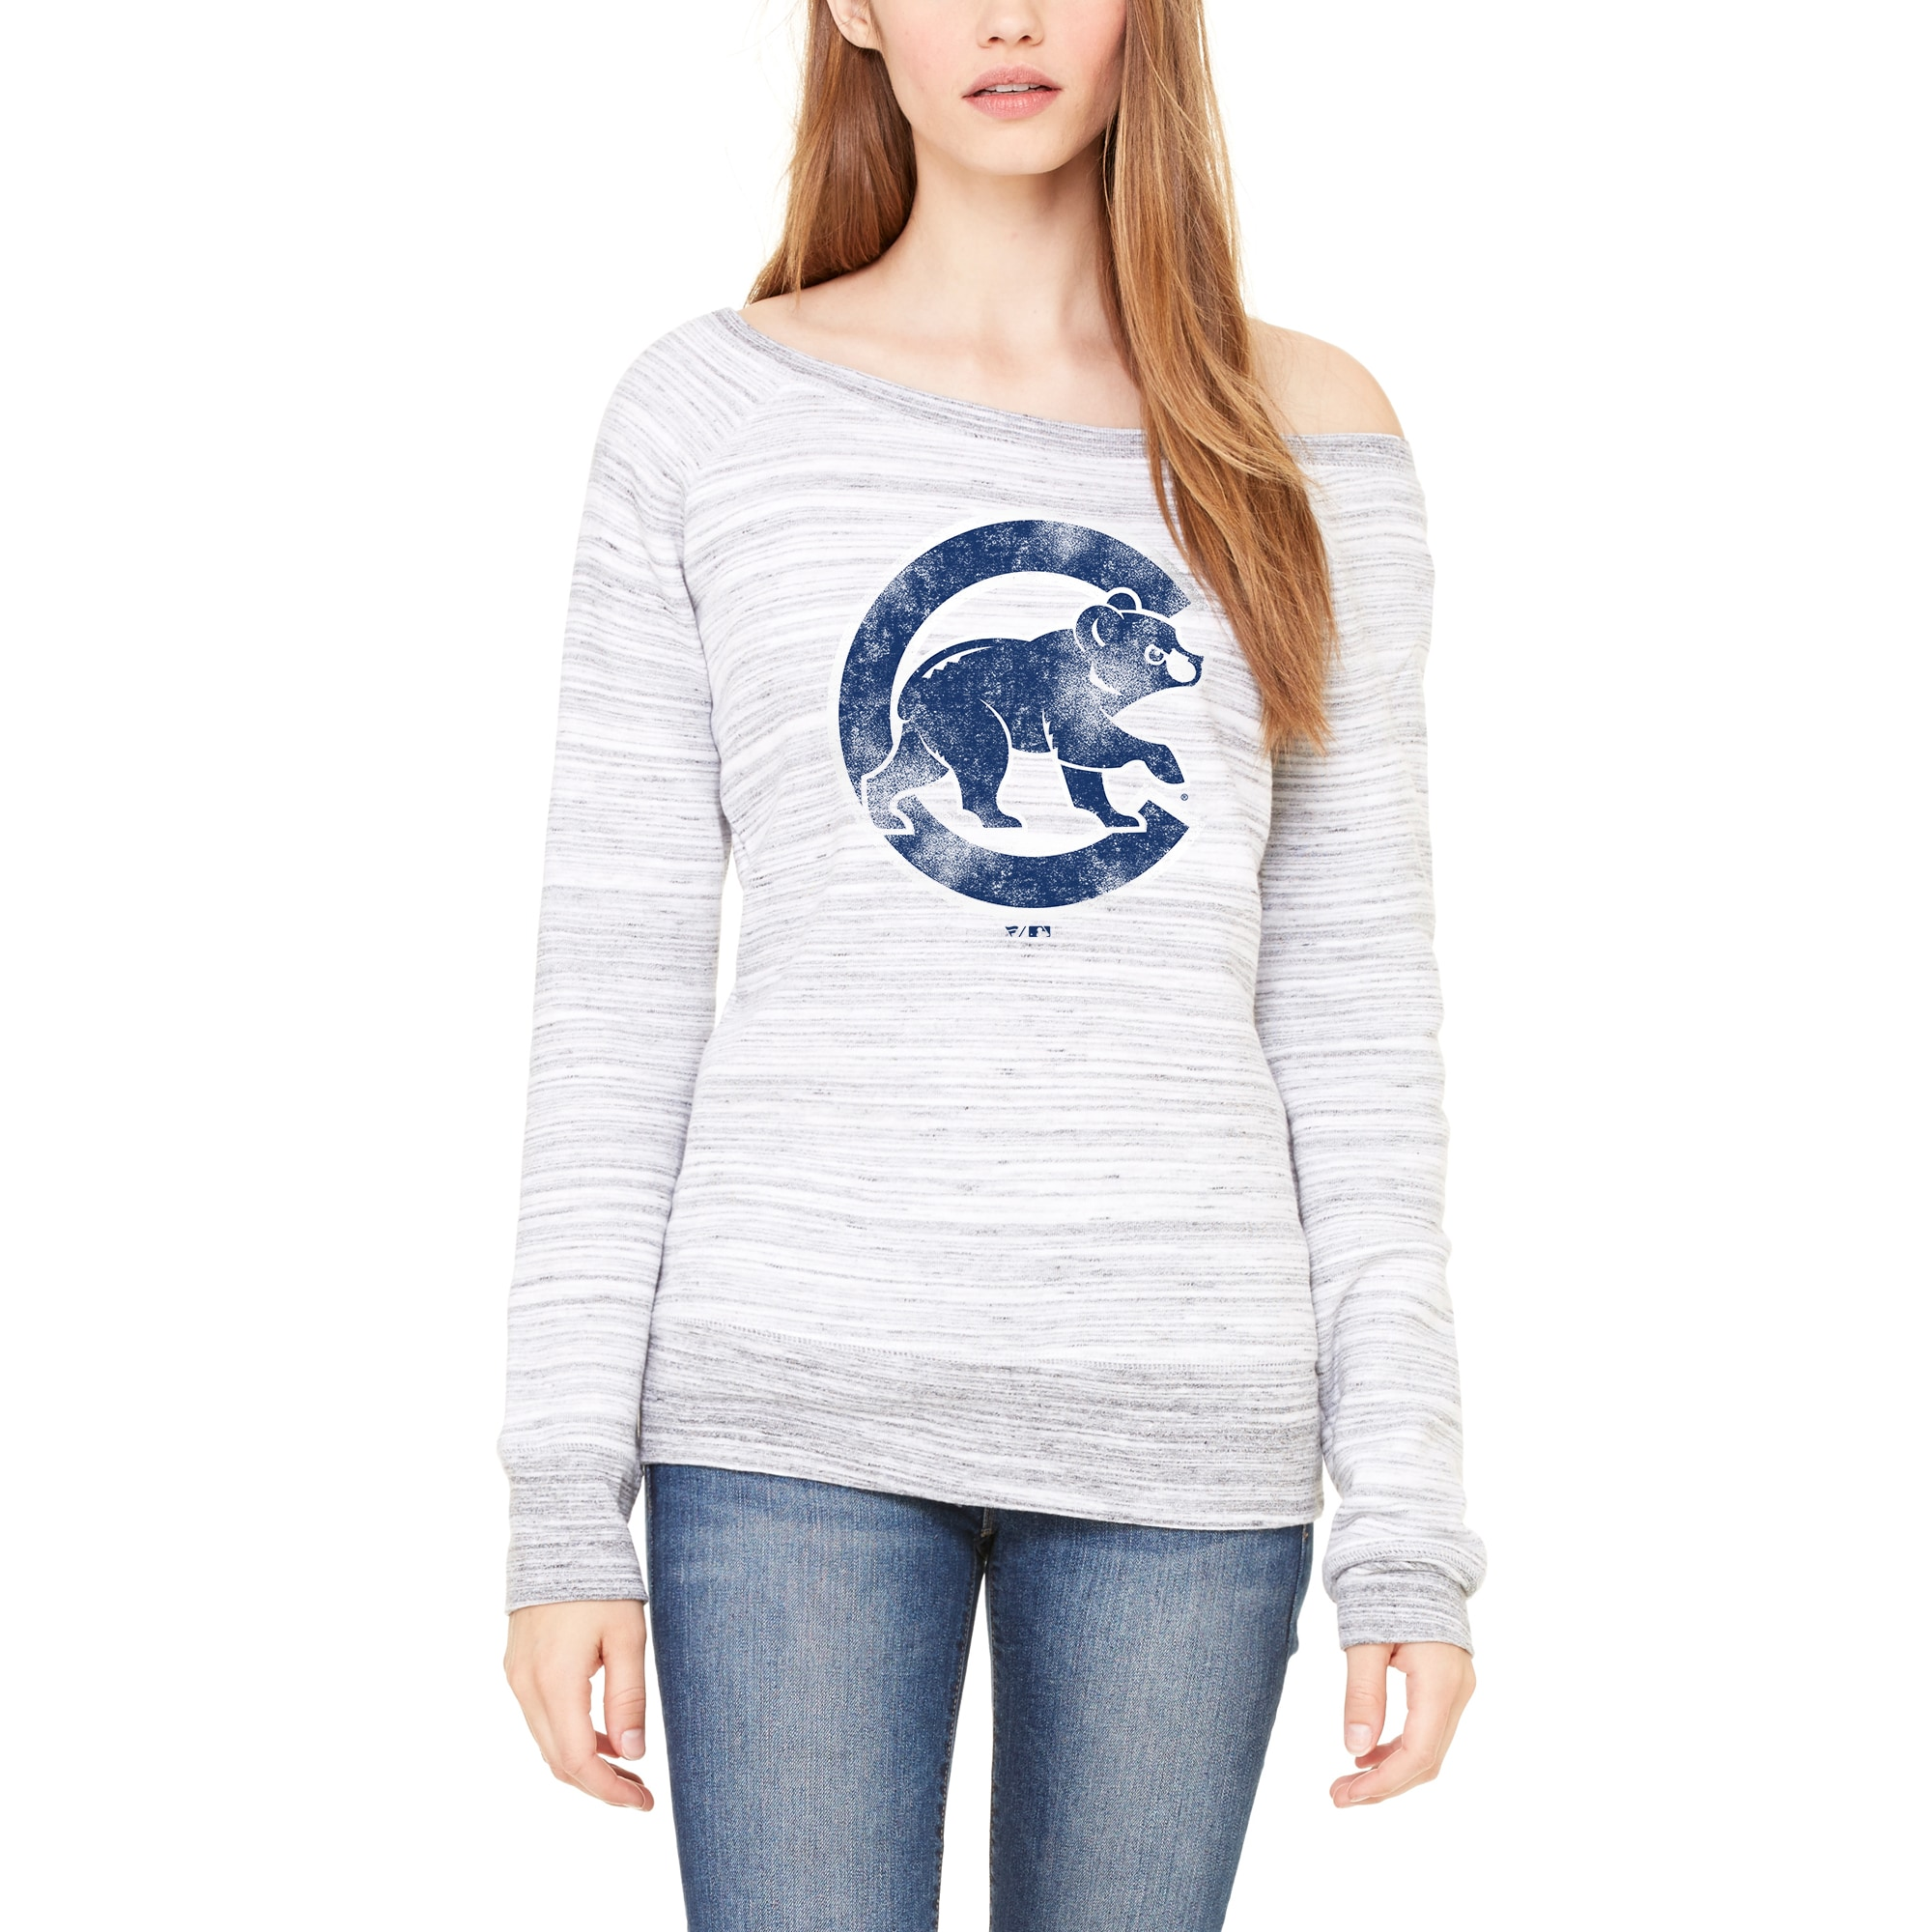 Chicago Cubs Let Loose by RNL Women's Game Day Wide Neck Sweatshirt - Light Gray Marble